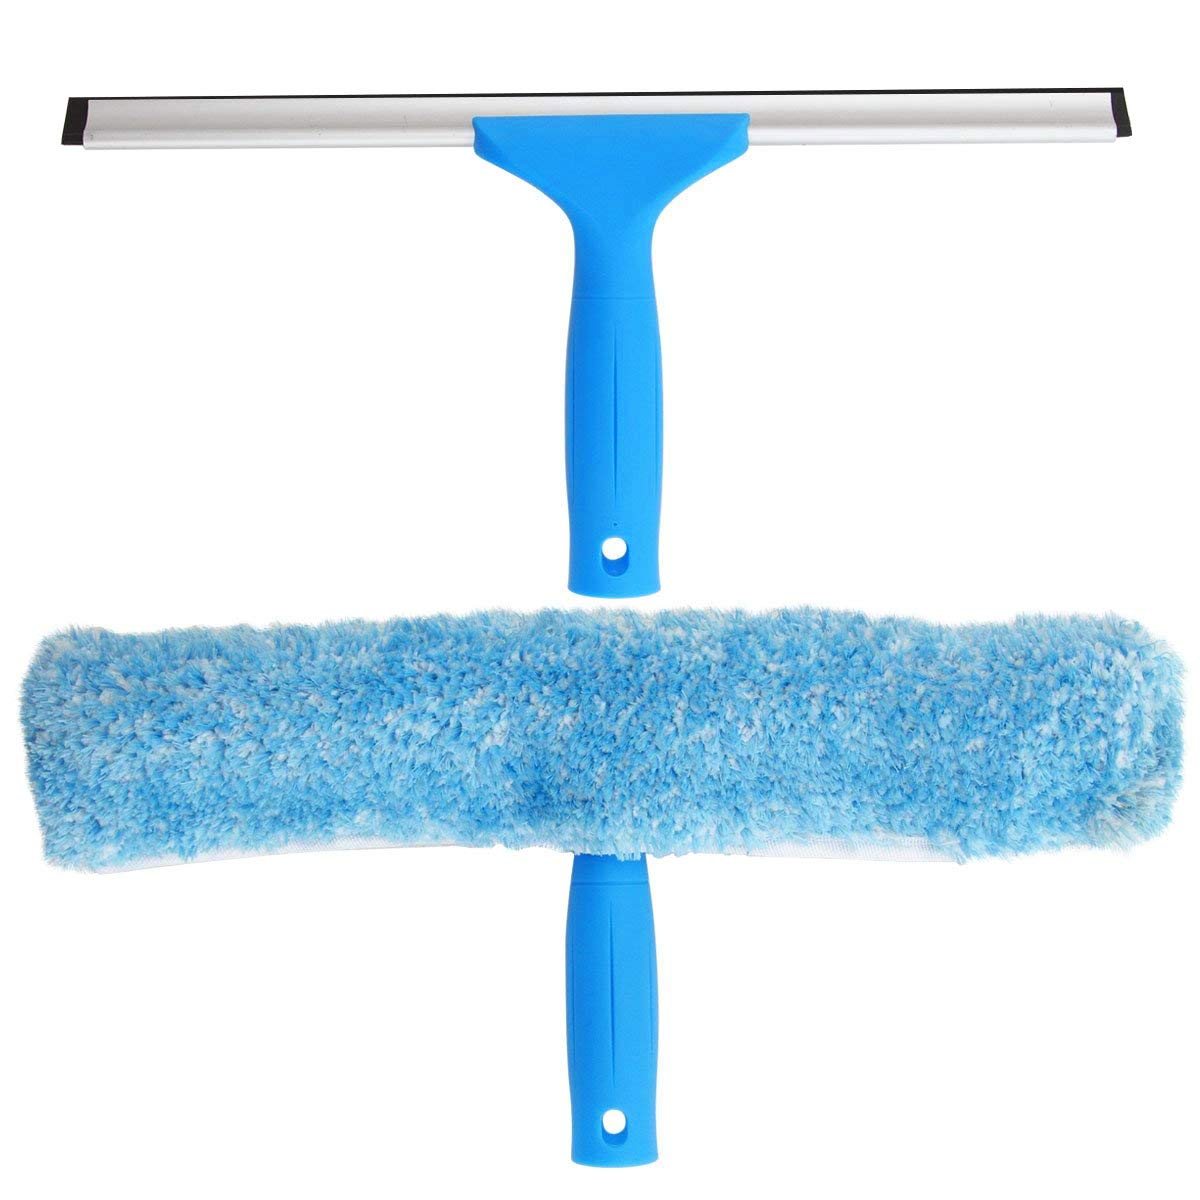 MR.SIGA Professional Window Cleaning Combo - Squeegee & Microfiber Window Scrubber, 14''